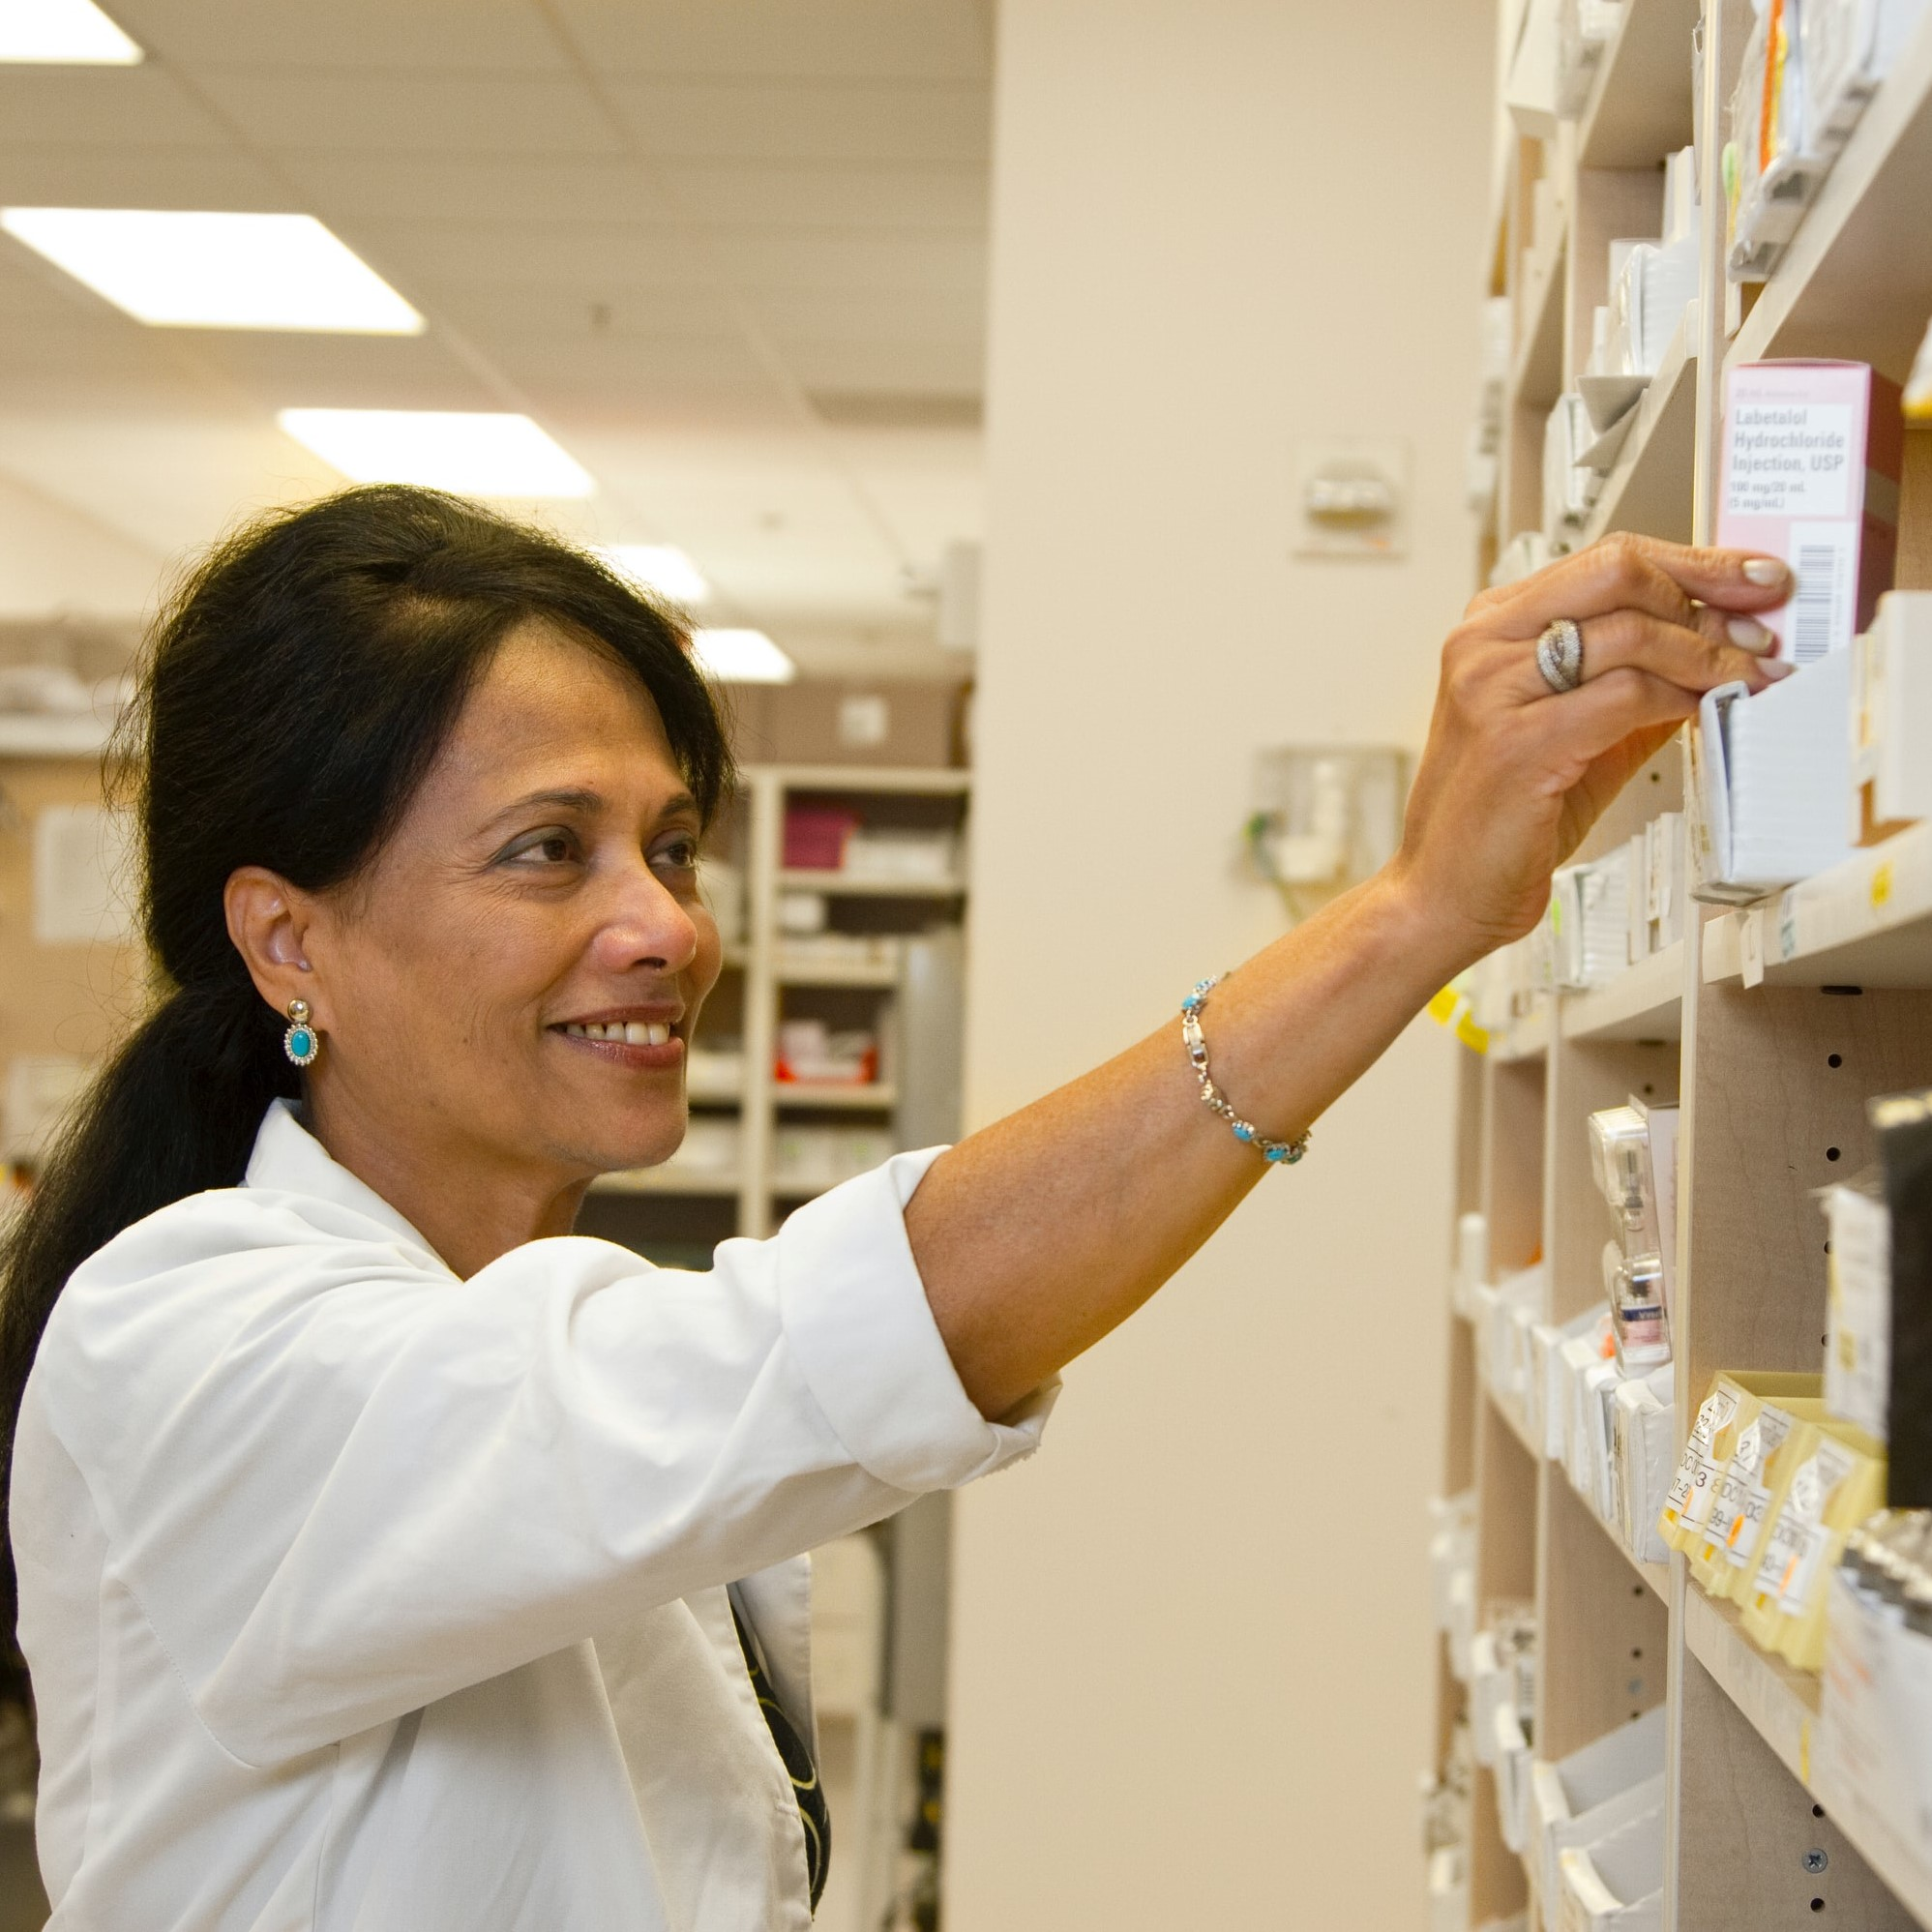 Image of a pharmacist reaching for a box